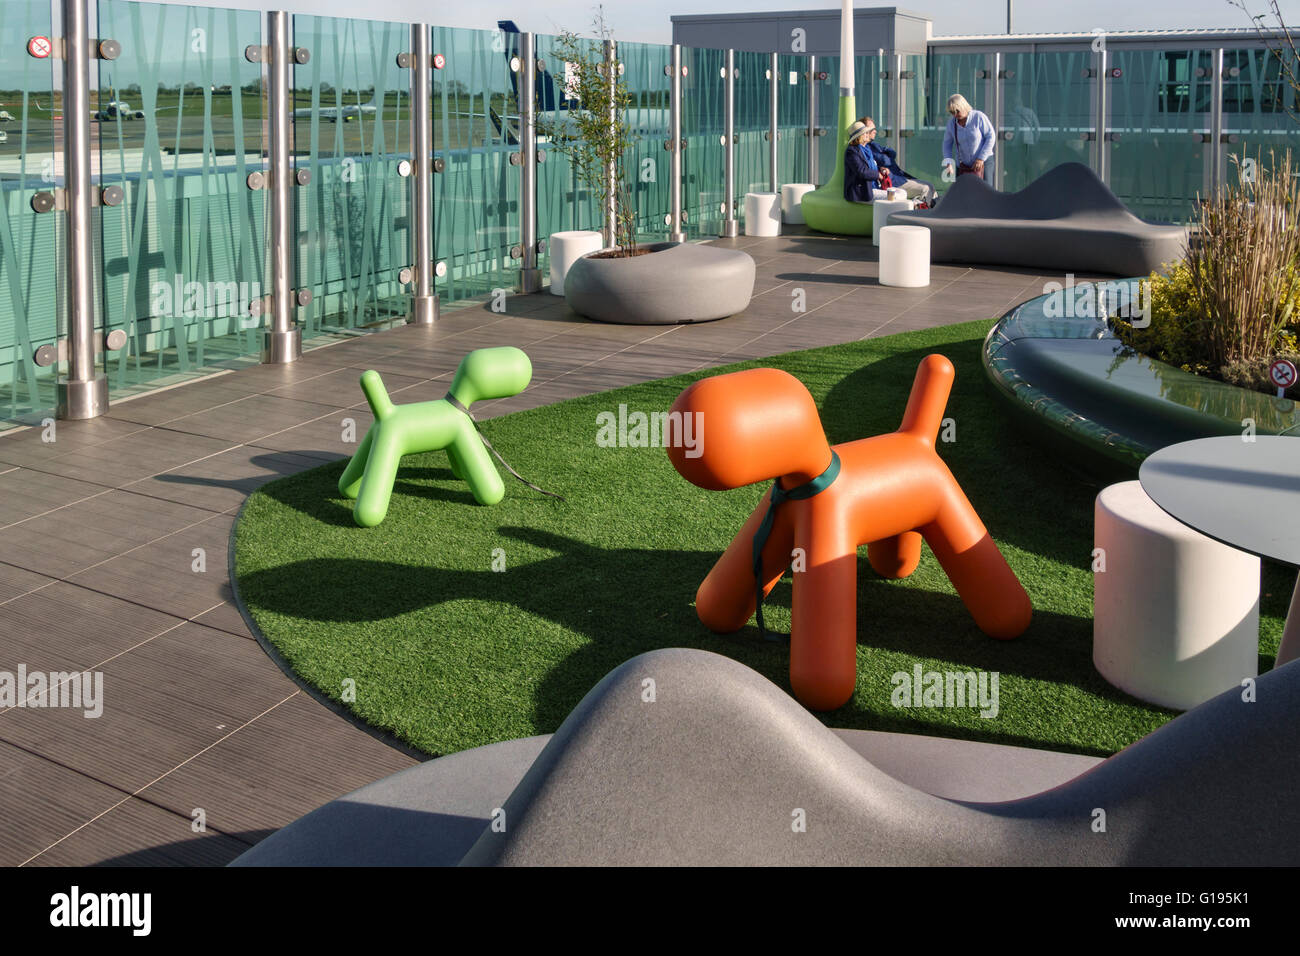 Bristol Airport, UK. The new roof terrace for passengers - Stock Image